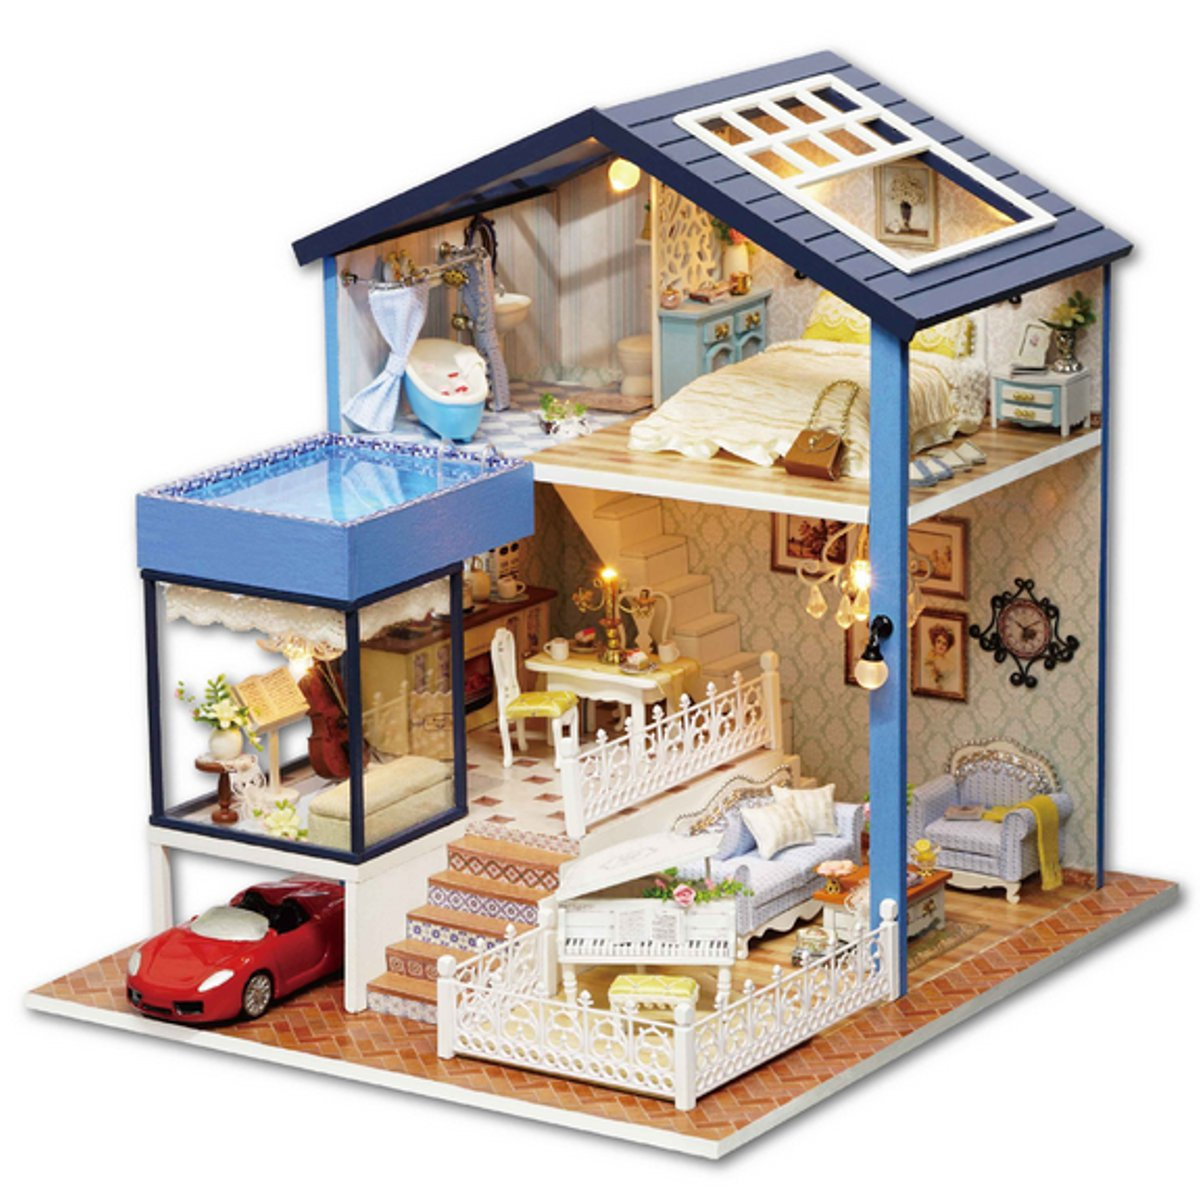 Exquisite Miniature DIY Doll House With Furniture And Lights dollhouse